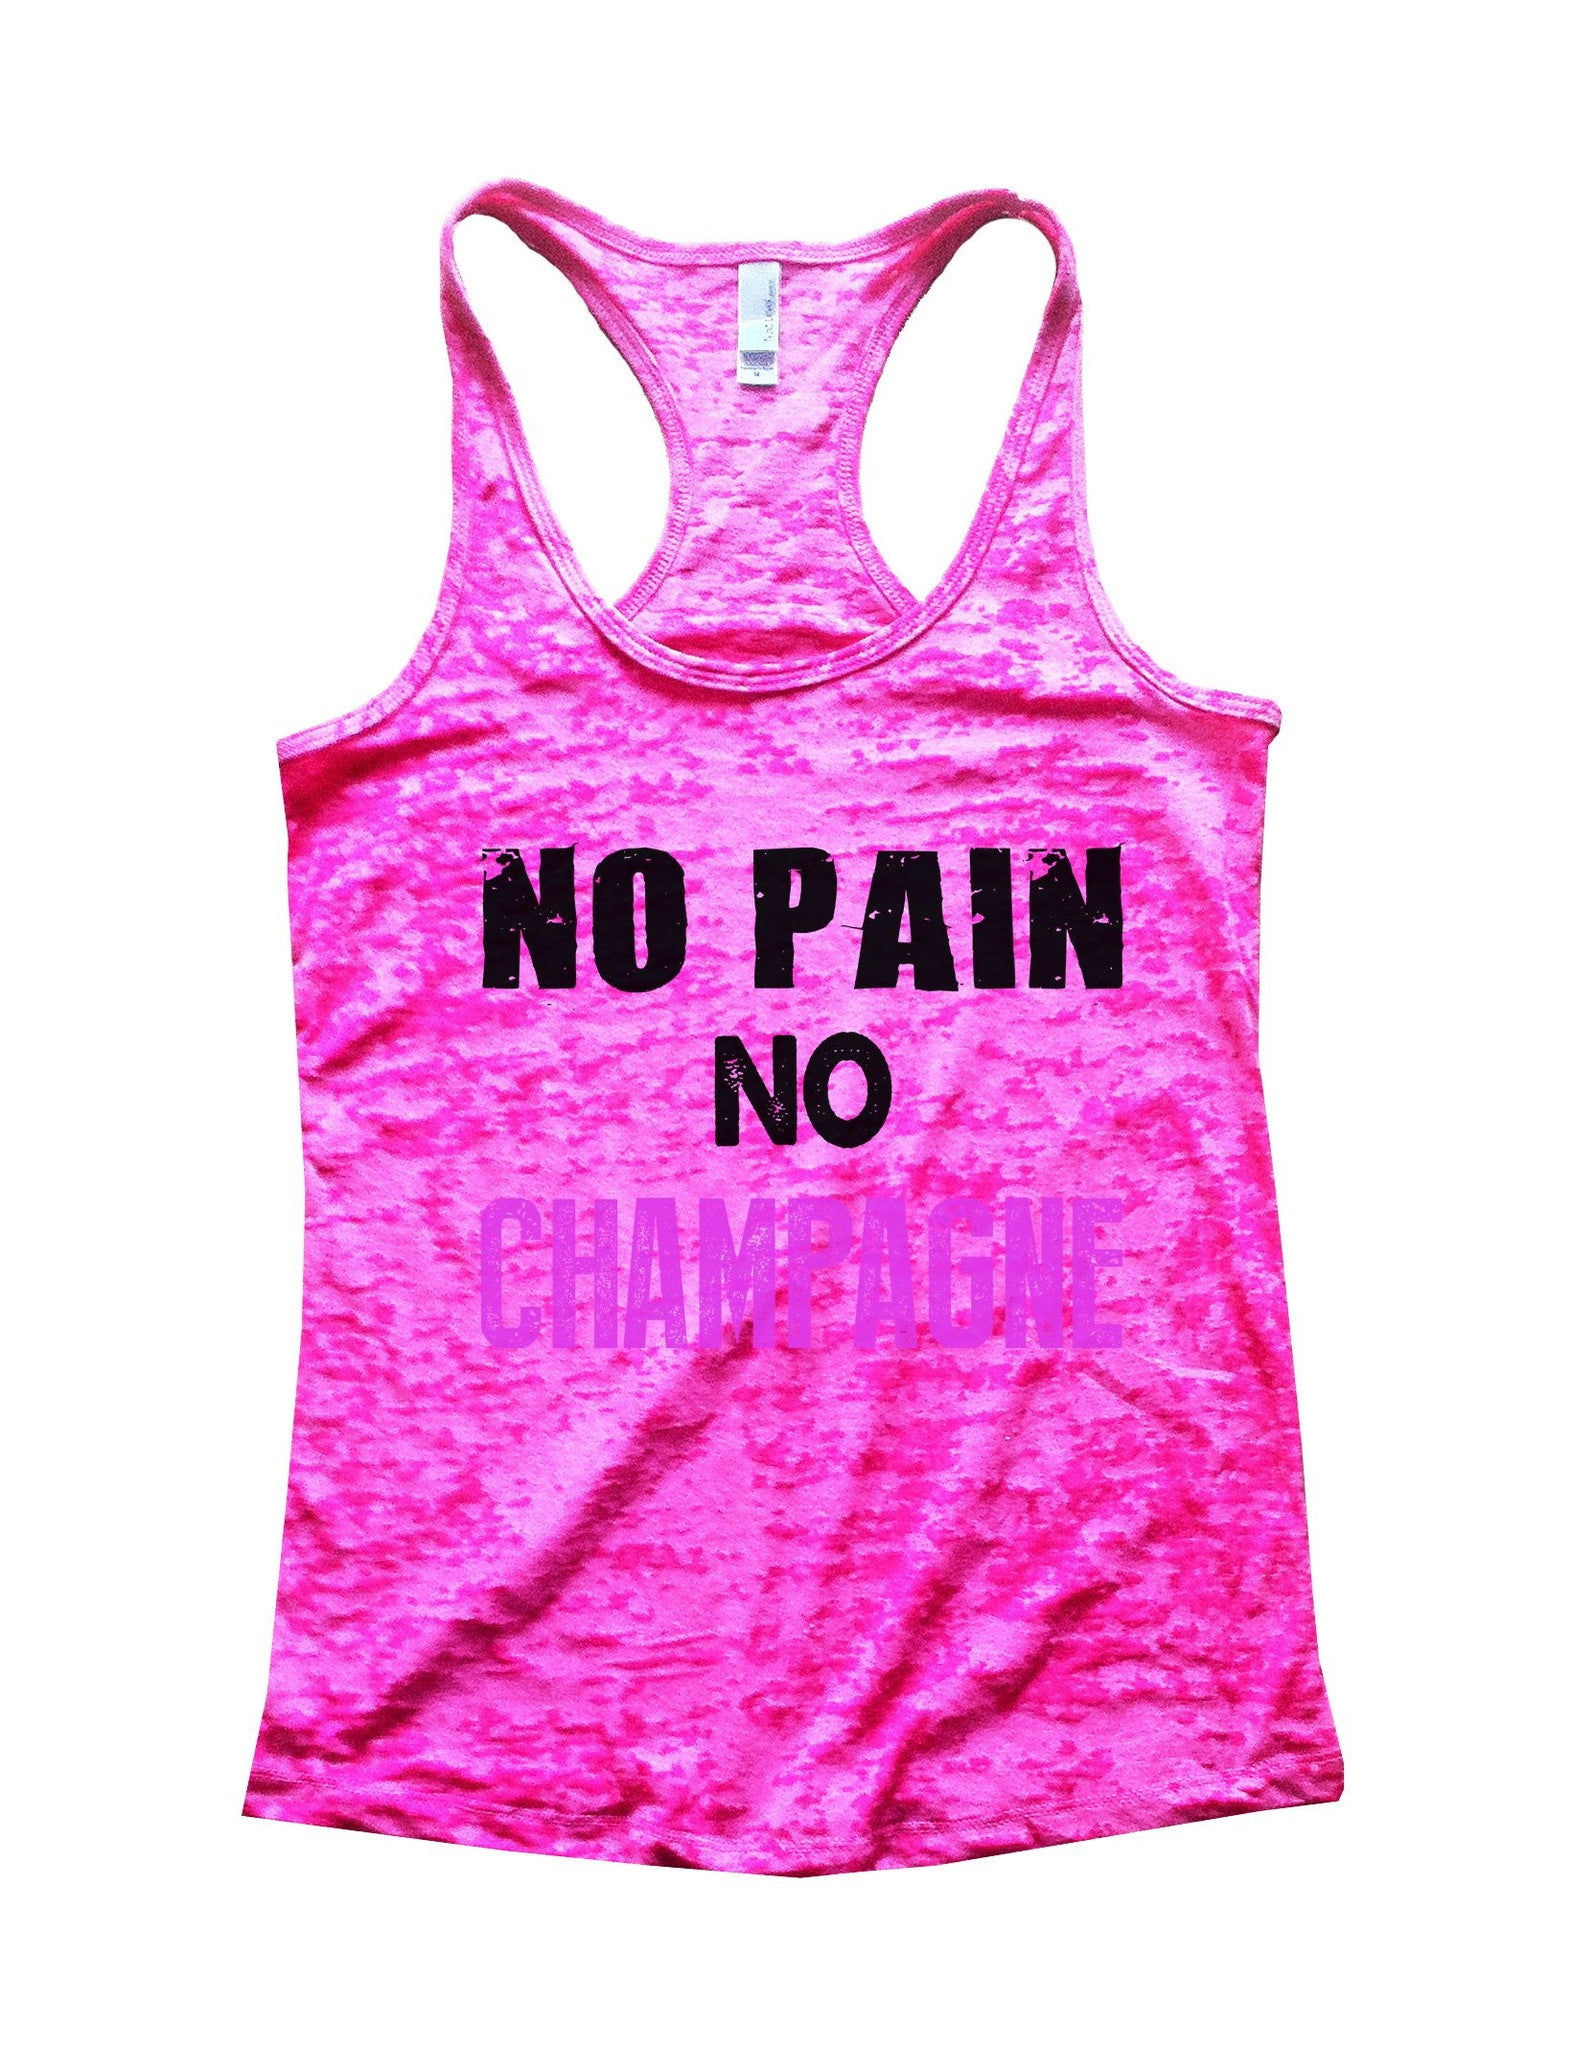 No Pain No Champagne Burnout Tank Top By BurnoutTankTops.com - 683 - Funny Shirts Tank Tops Burnouts and Triblends  - 4